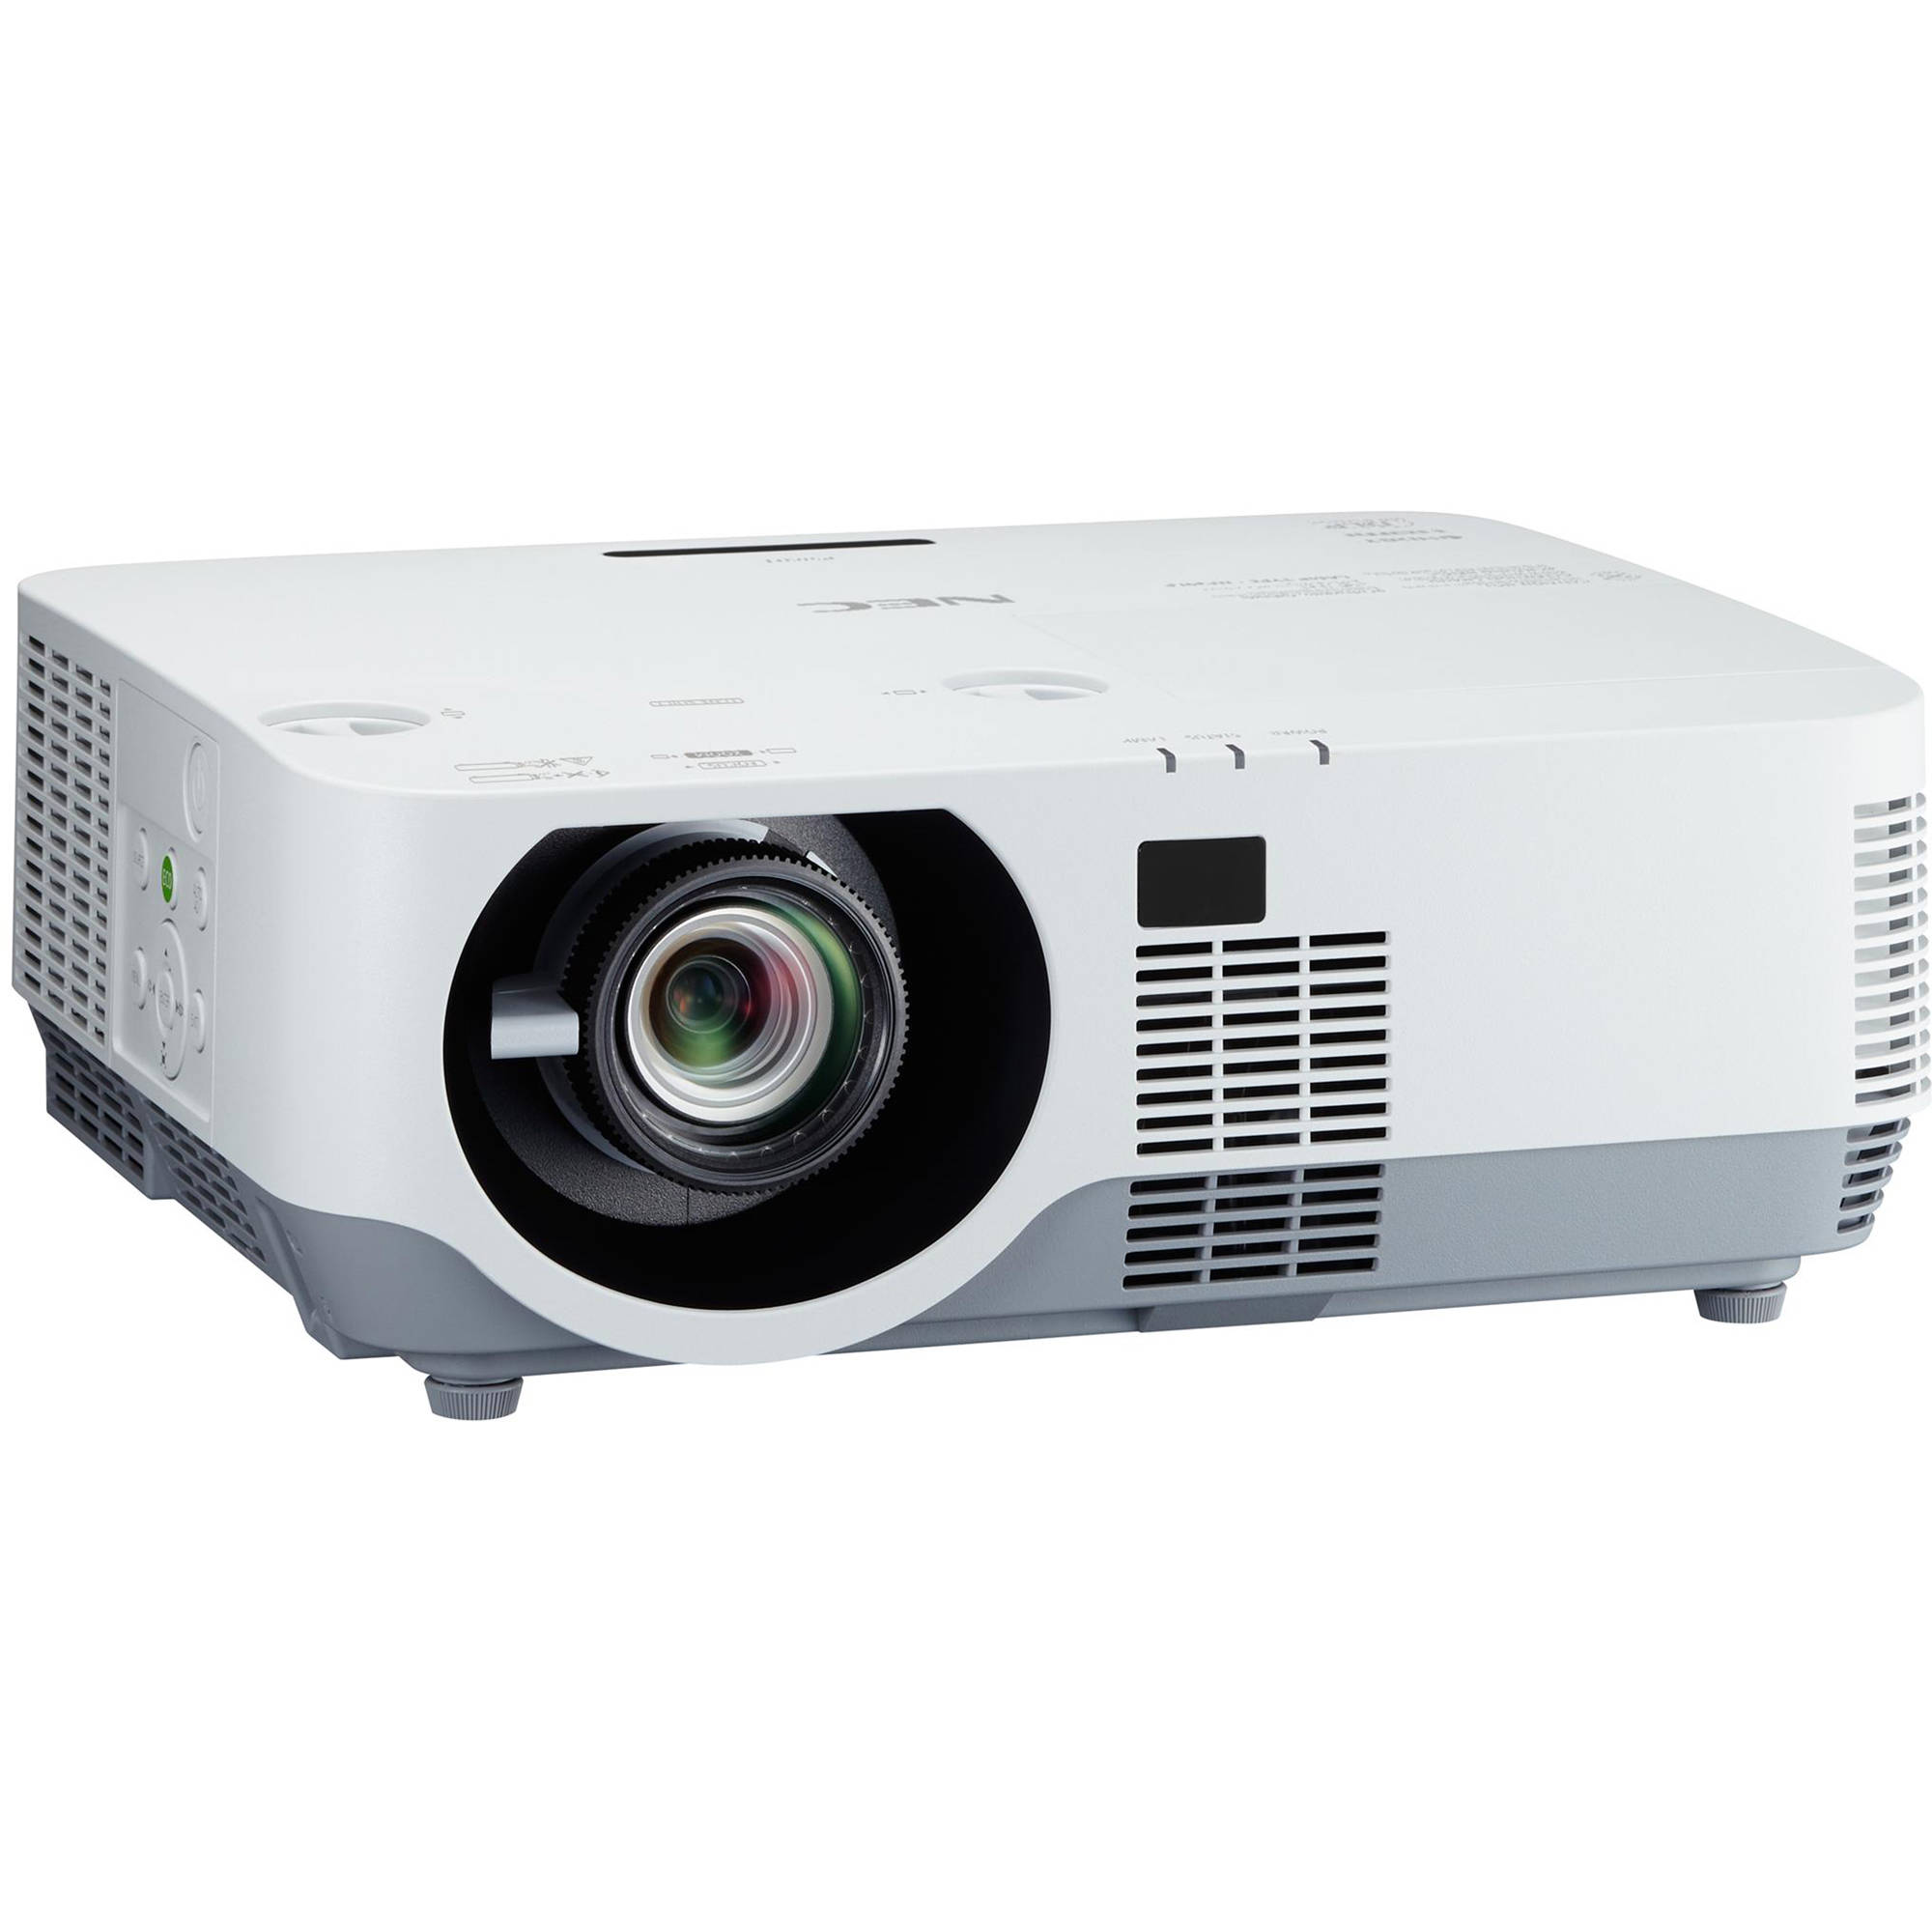 Nec np p502hl 5000 lumen full hd professional laser np p502hl for Hd projector